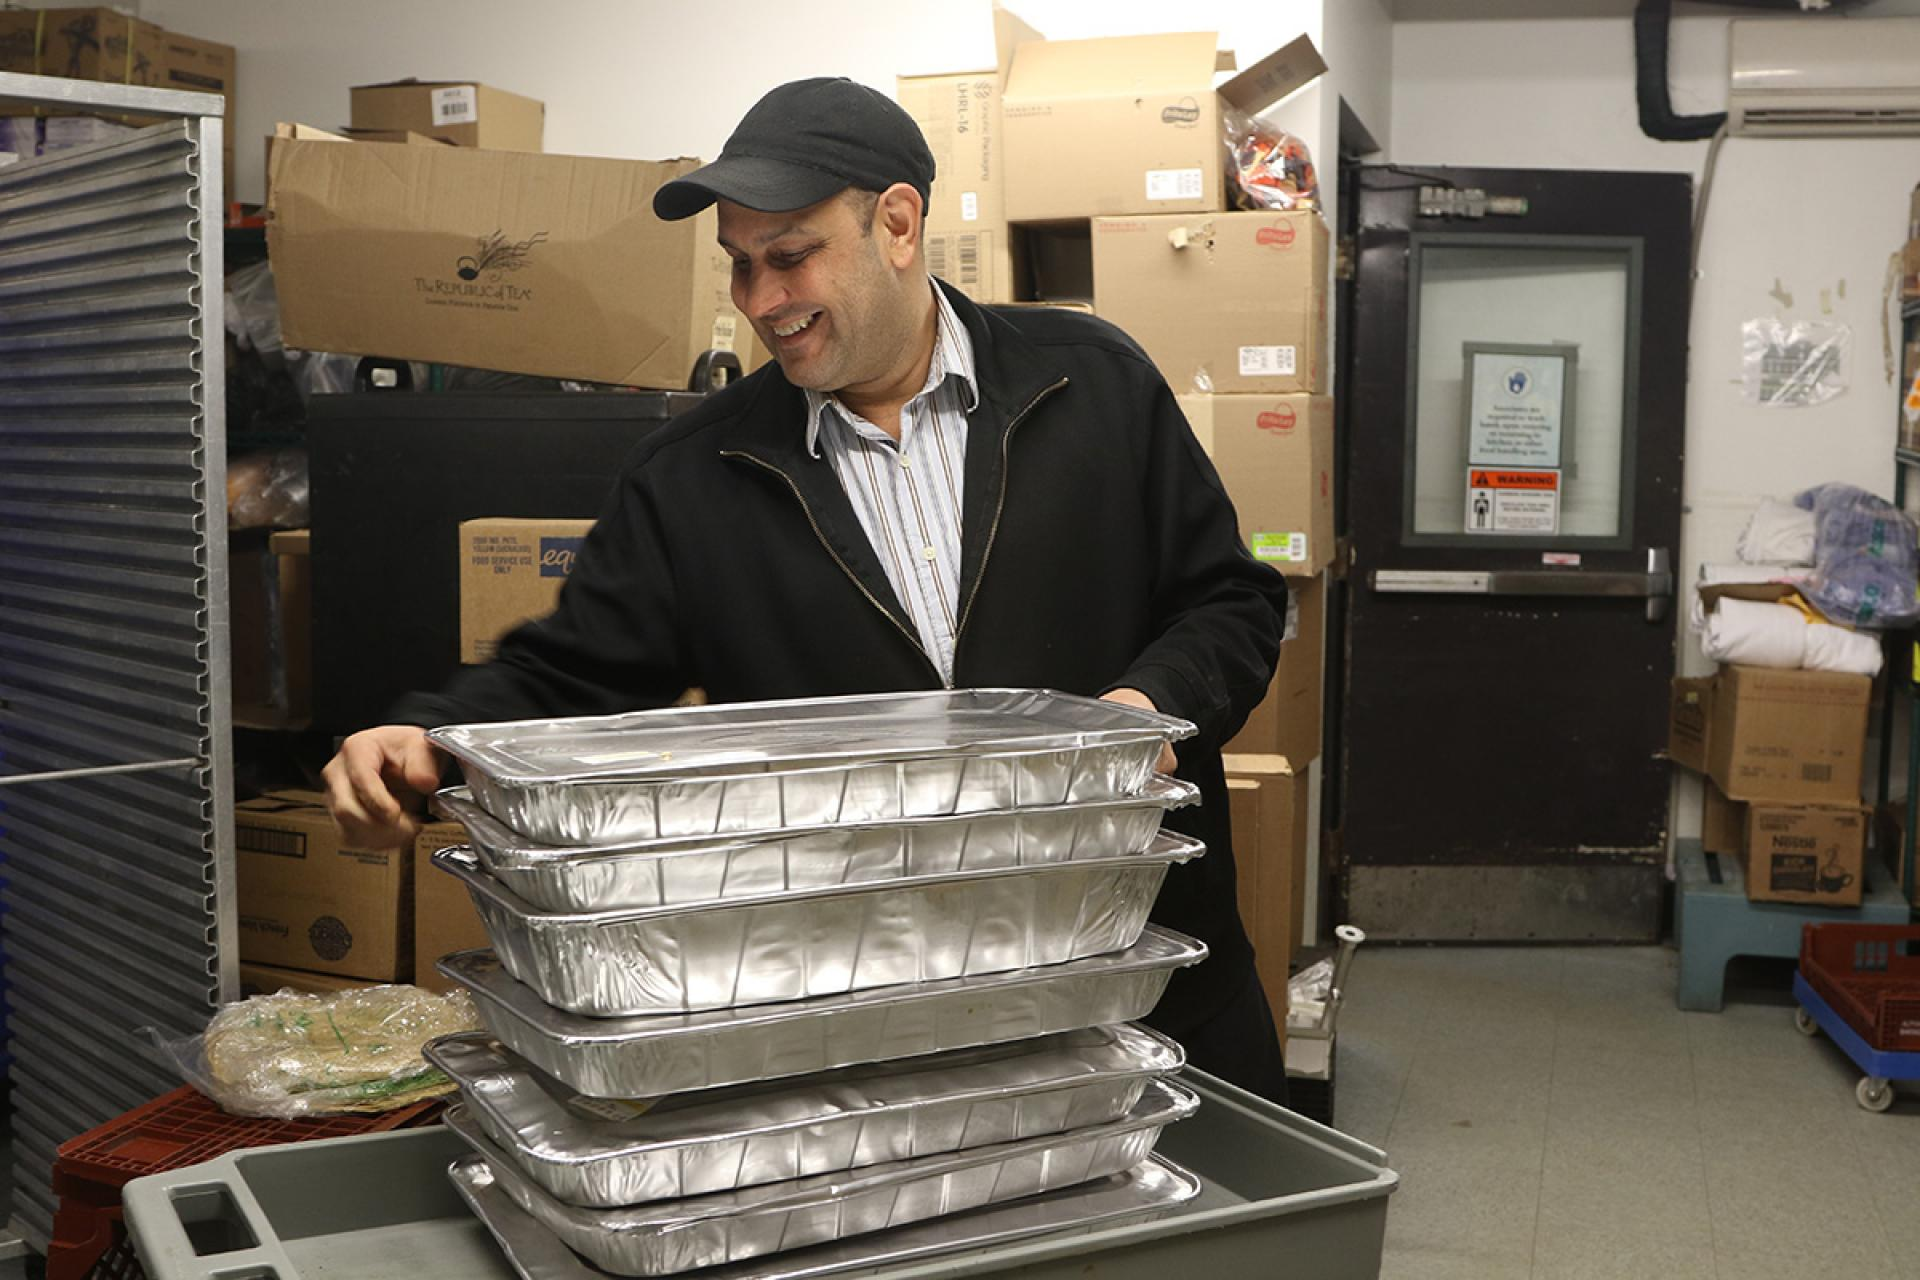 Chartwells employee helps load food for donation.